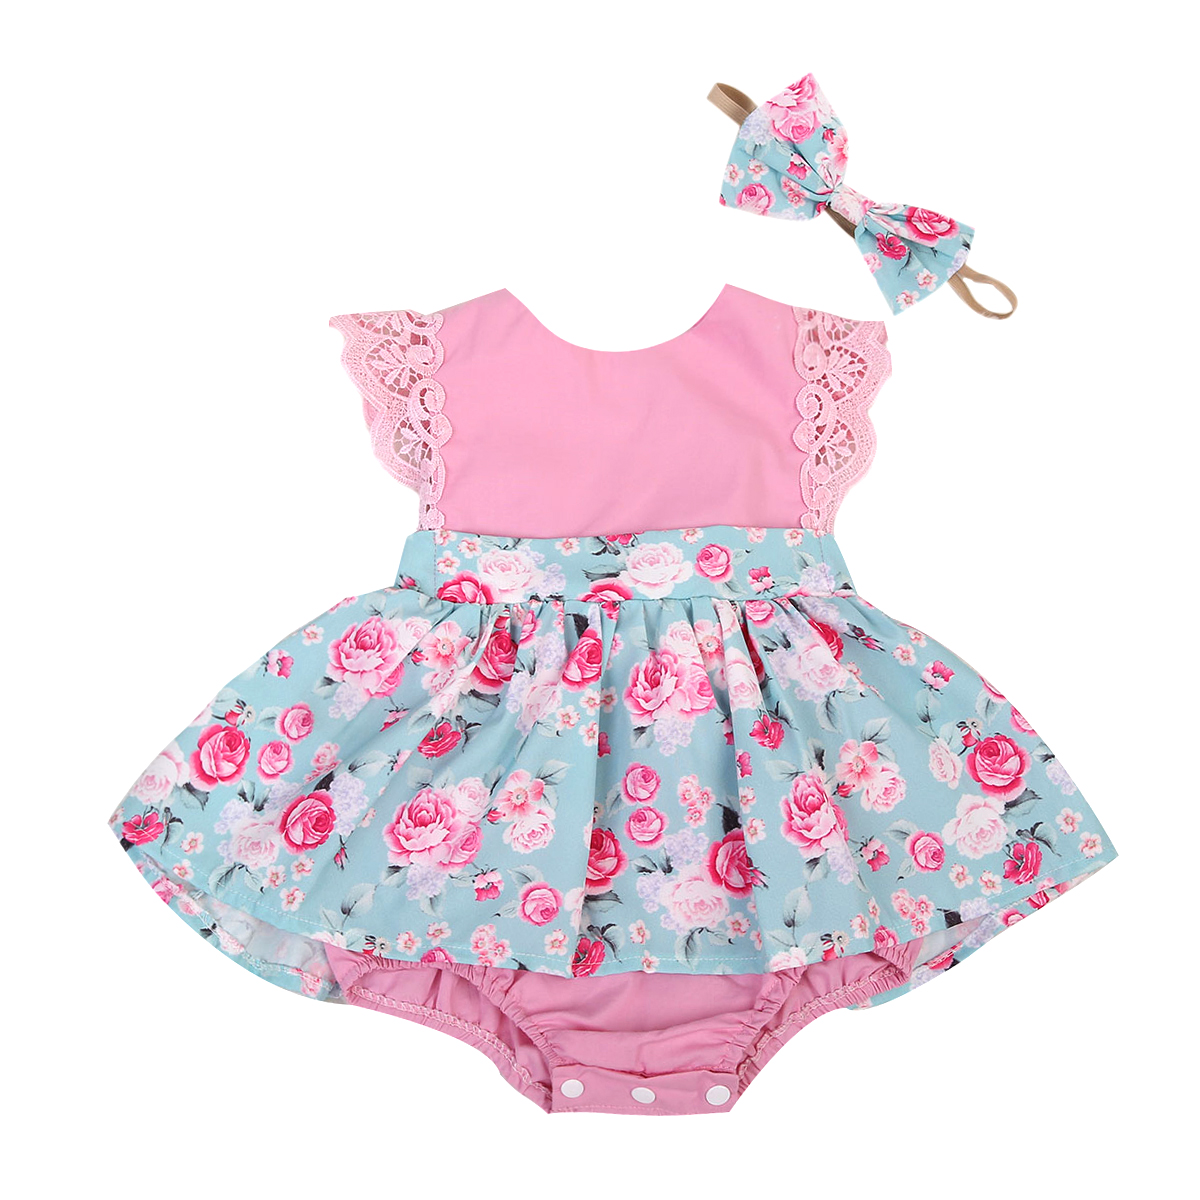 Emmababy Baby Girl Lace   Romper   Sleeveless Cute Summer Clothes Party Baby Girls Kids   Romper   Dress Clothing Tops Floral Princess